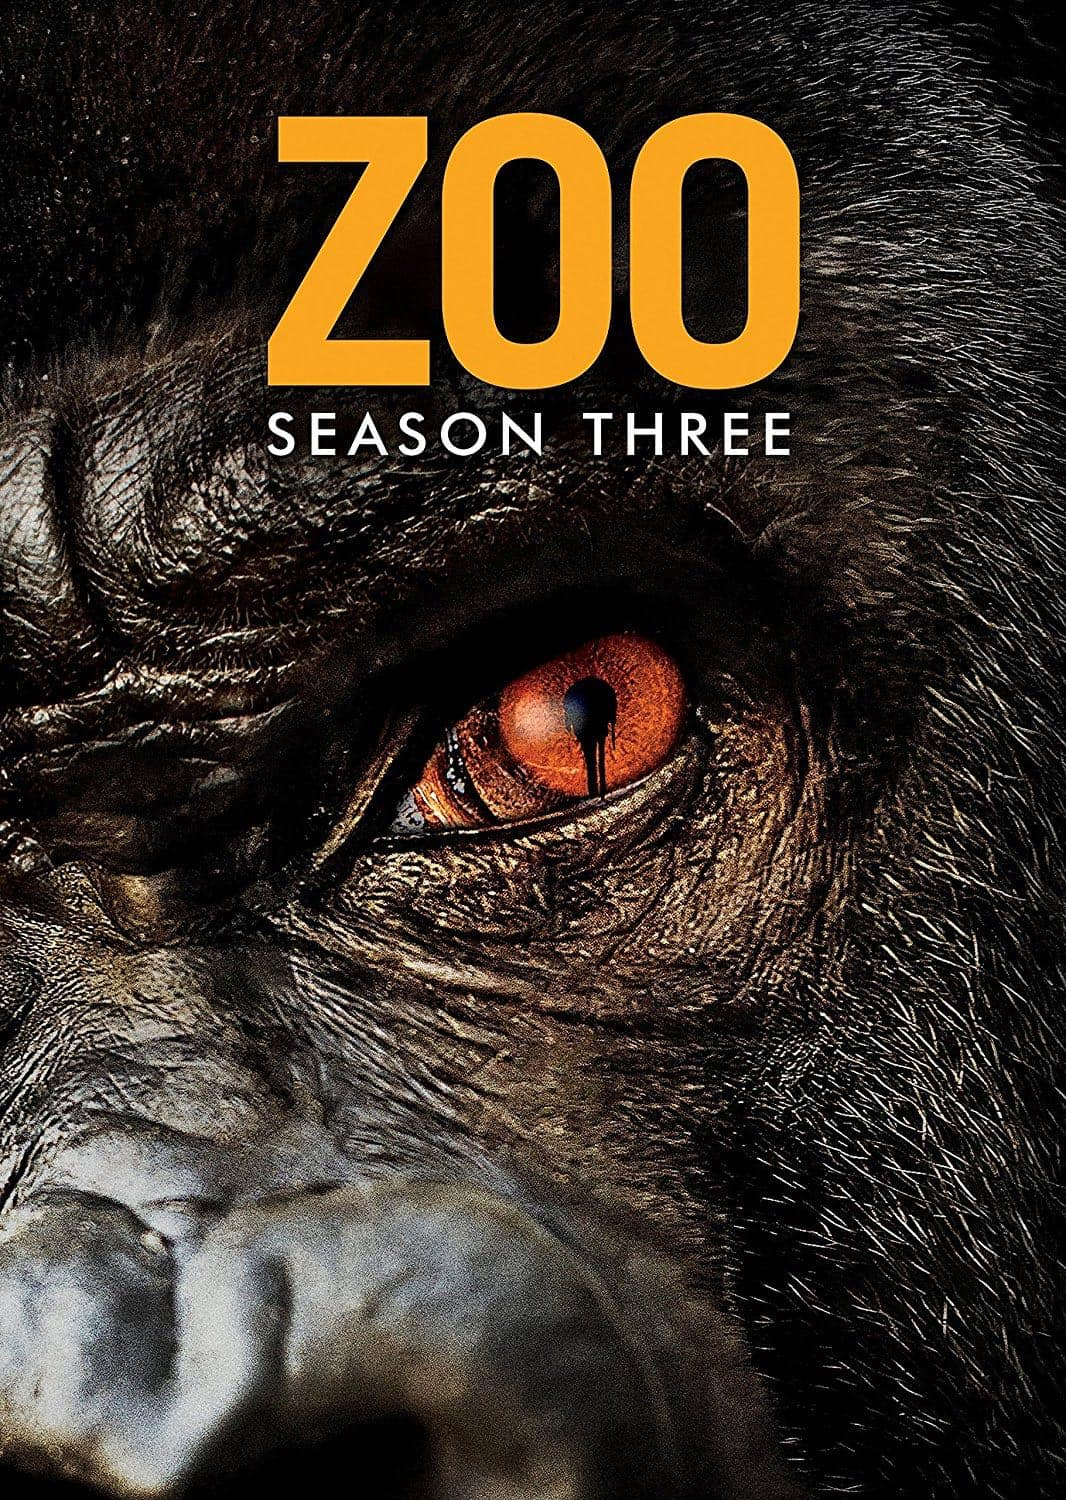 Zoo Serie Staffel 3